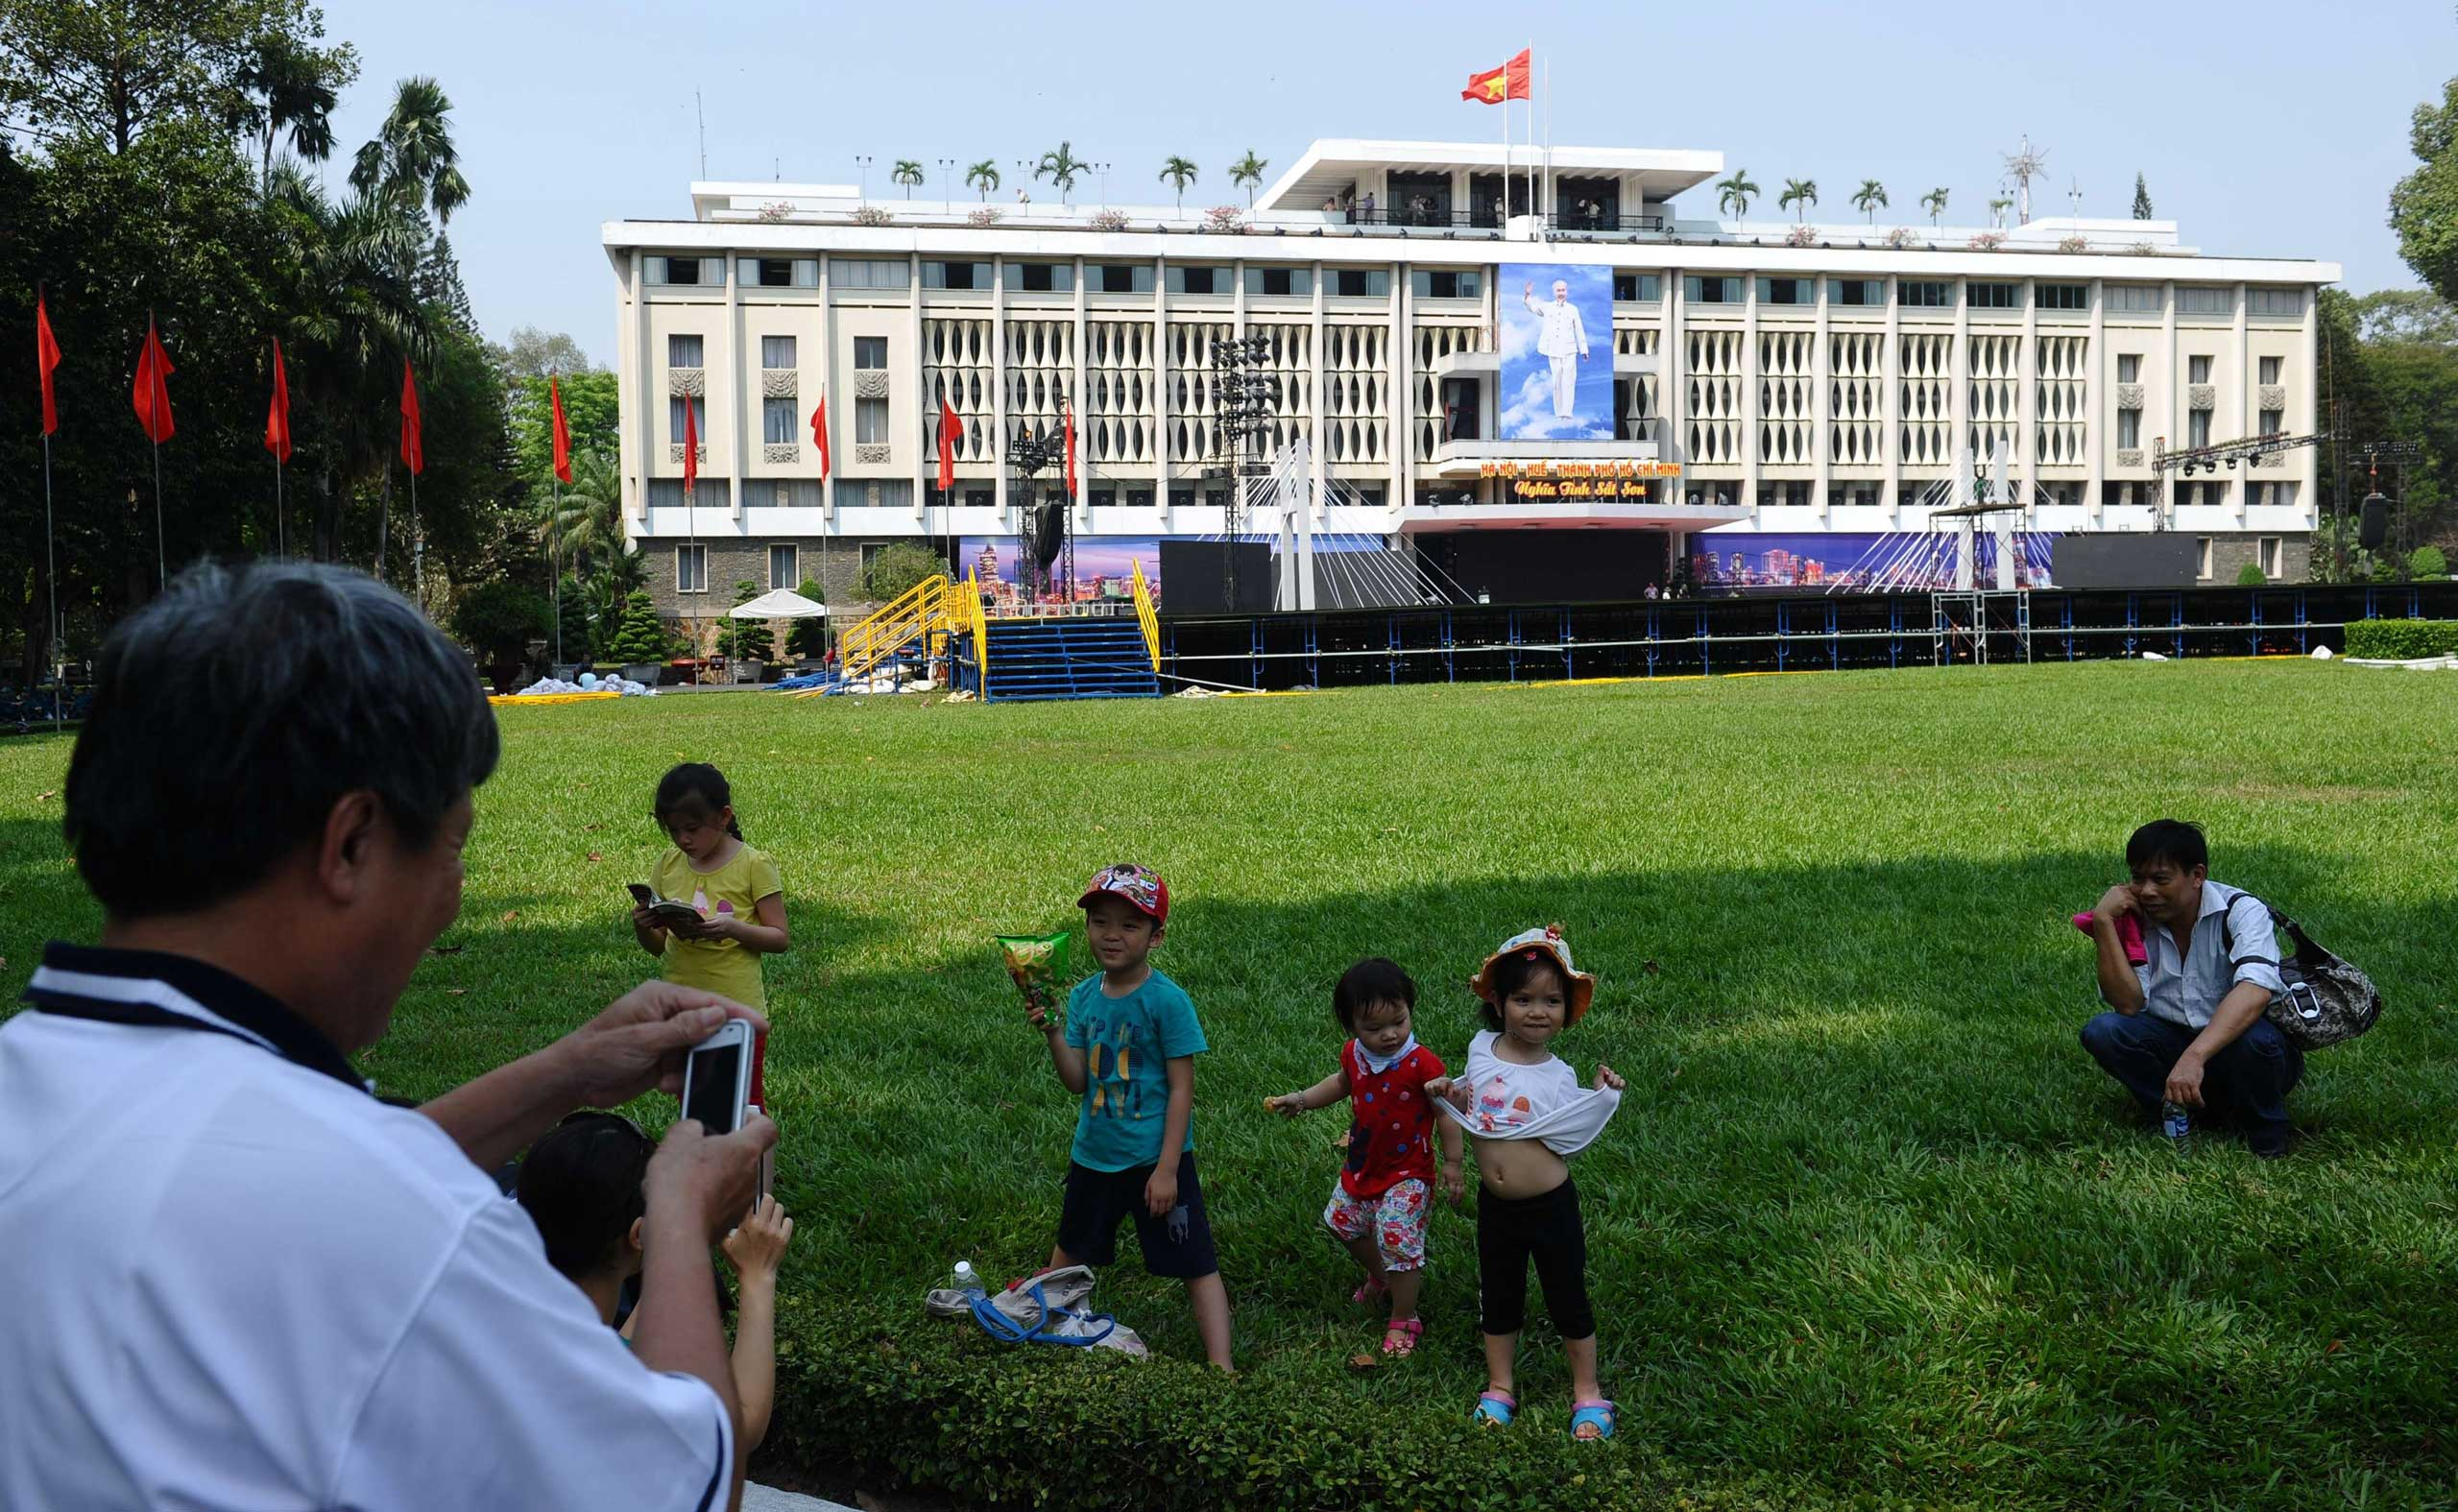 A man takes a family photo in front of the former presidential palace of the former South Vietnam U.S.-backed regime in Ho Chi Minh City, on April 10, 2015.